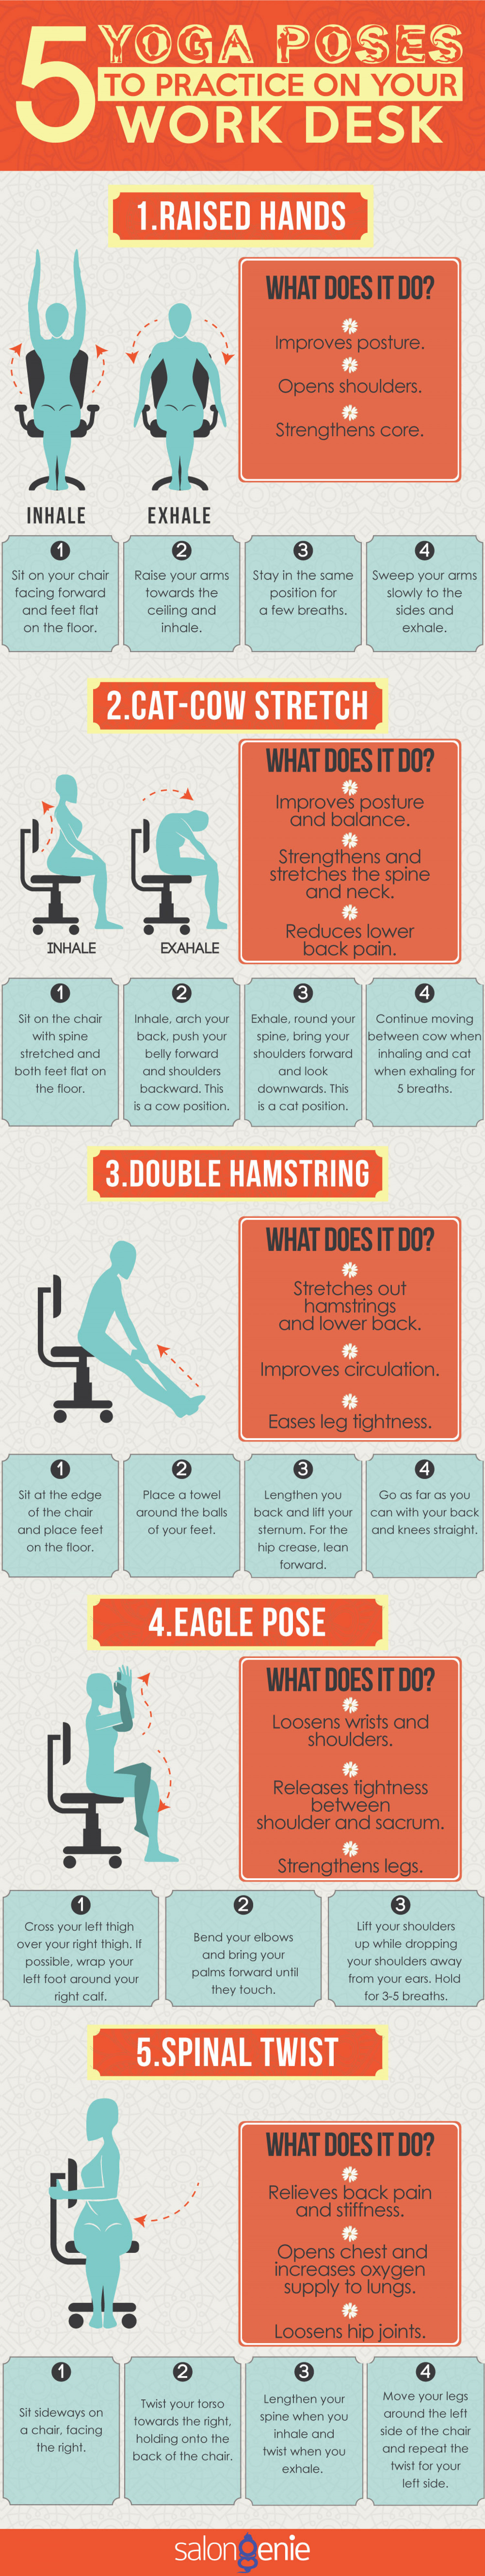 5 Yoga Poses to Practice on Your Desk Infographic